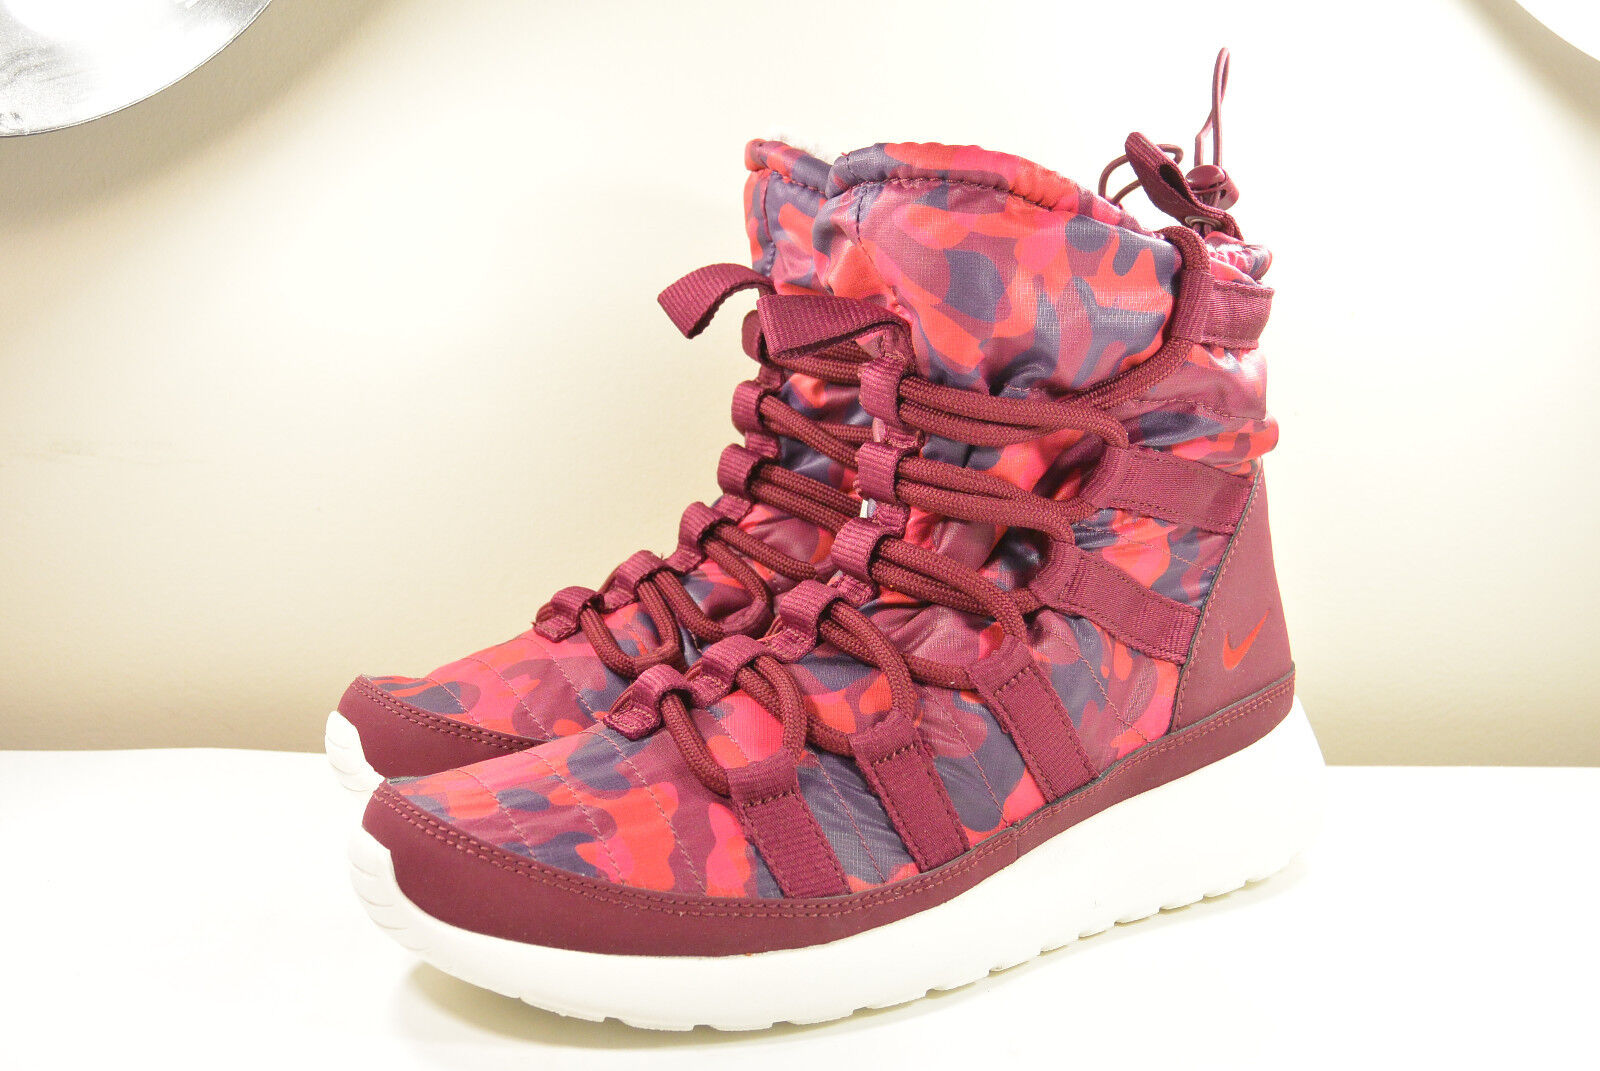 DS 2014 SAMPLE NIKE ROSHE ONE I PRINT GYM RED CAMO 7 PATTA ATMOS AIR MAX 90 1 93